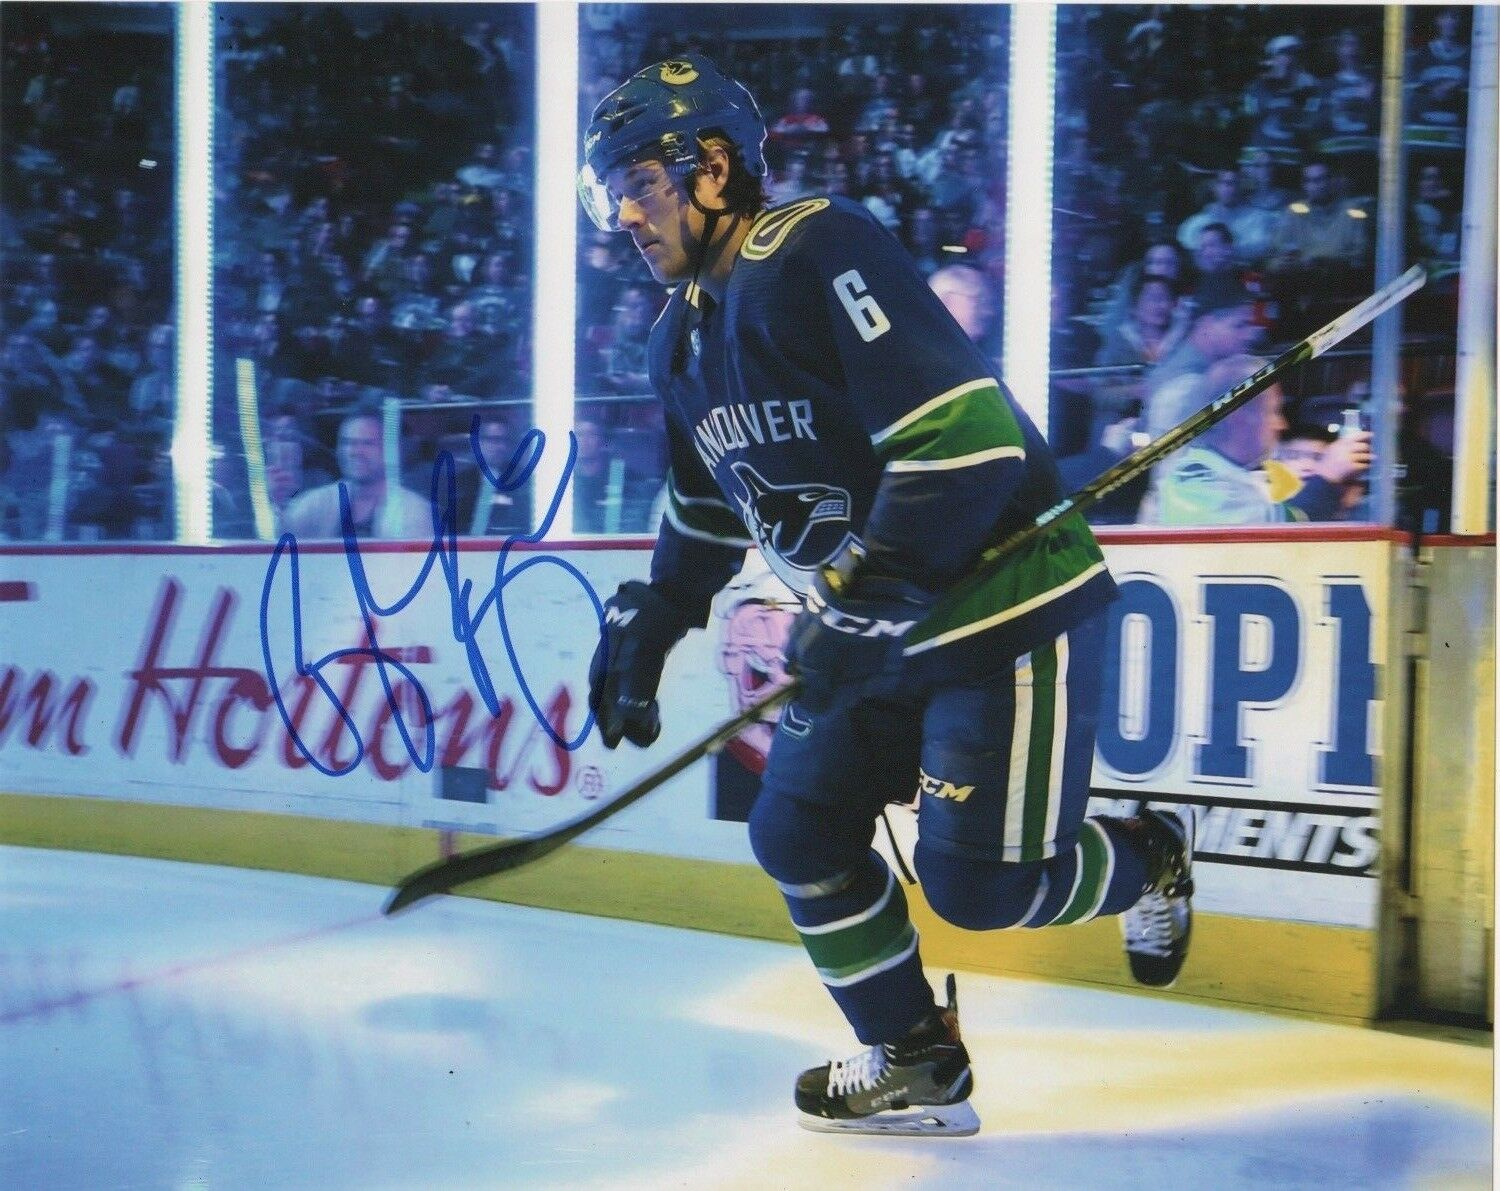 Brock Boeser Vancouver Canucks Signed Autograph 8x10 Photo #2